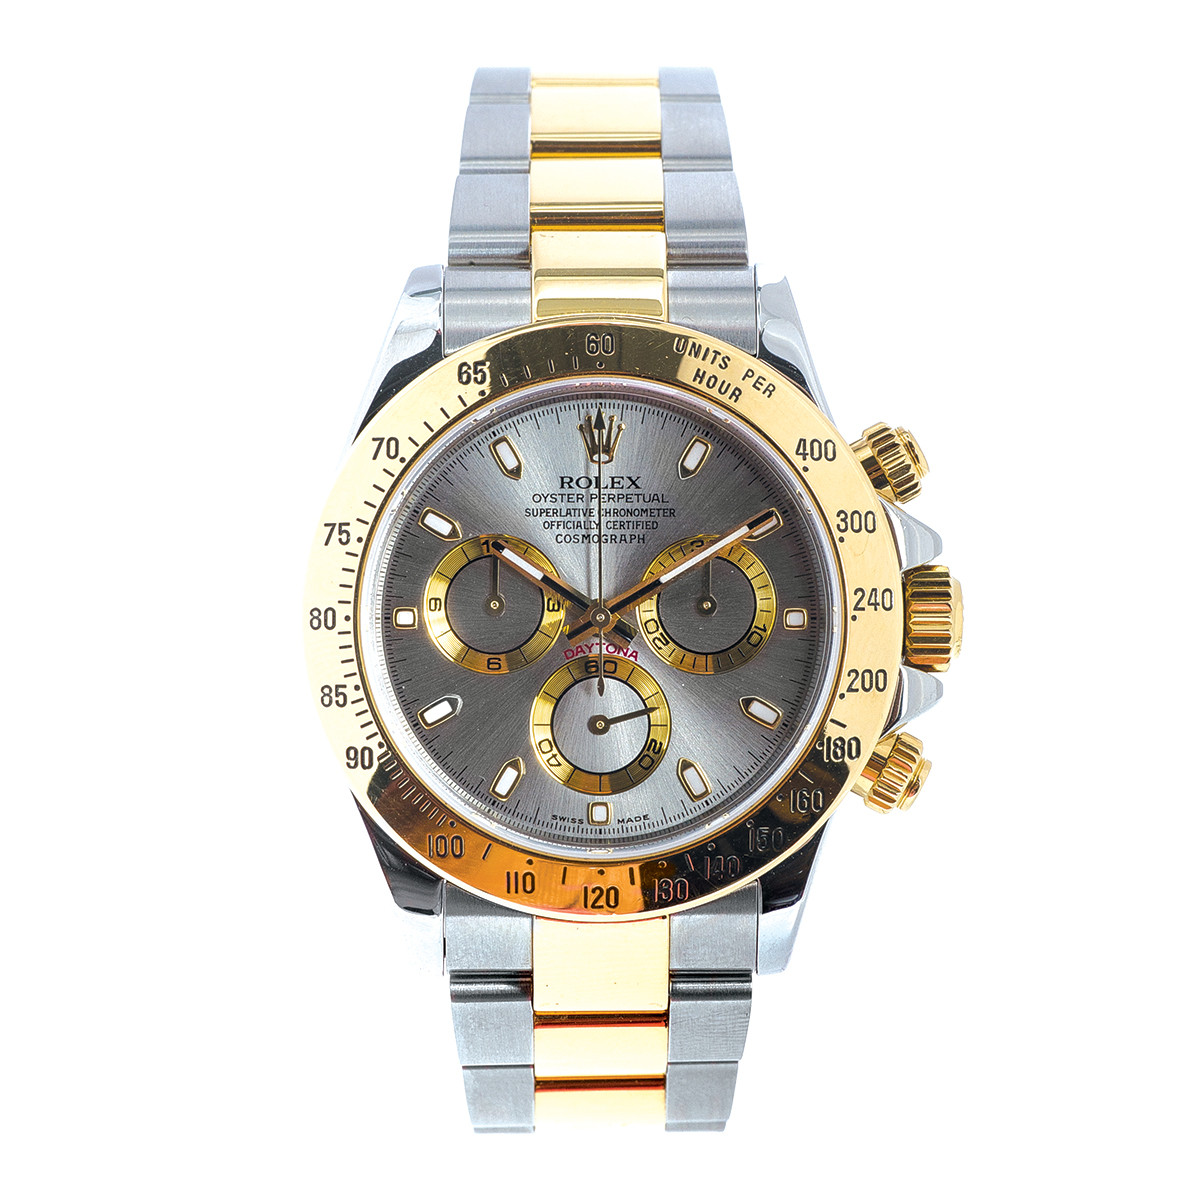 Preowned Rolex Daytona Cosmograph